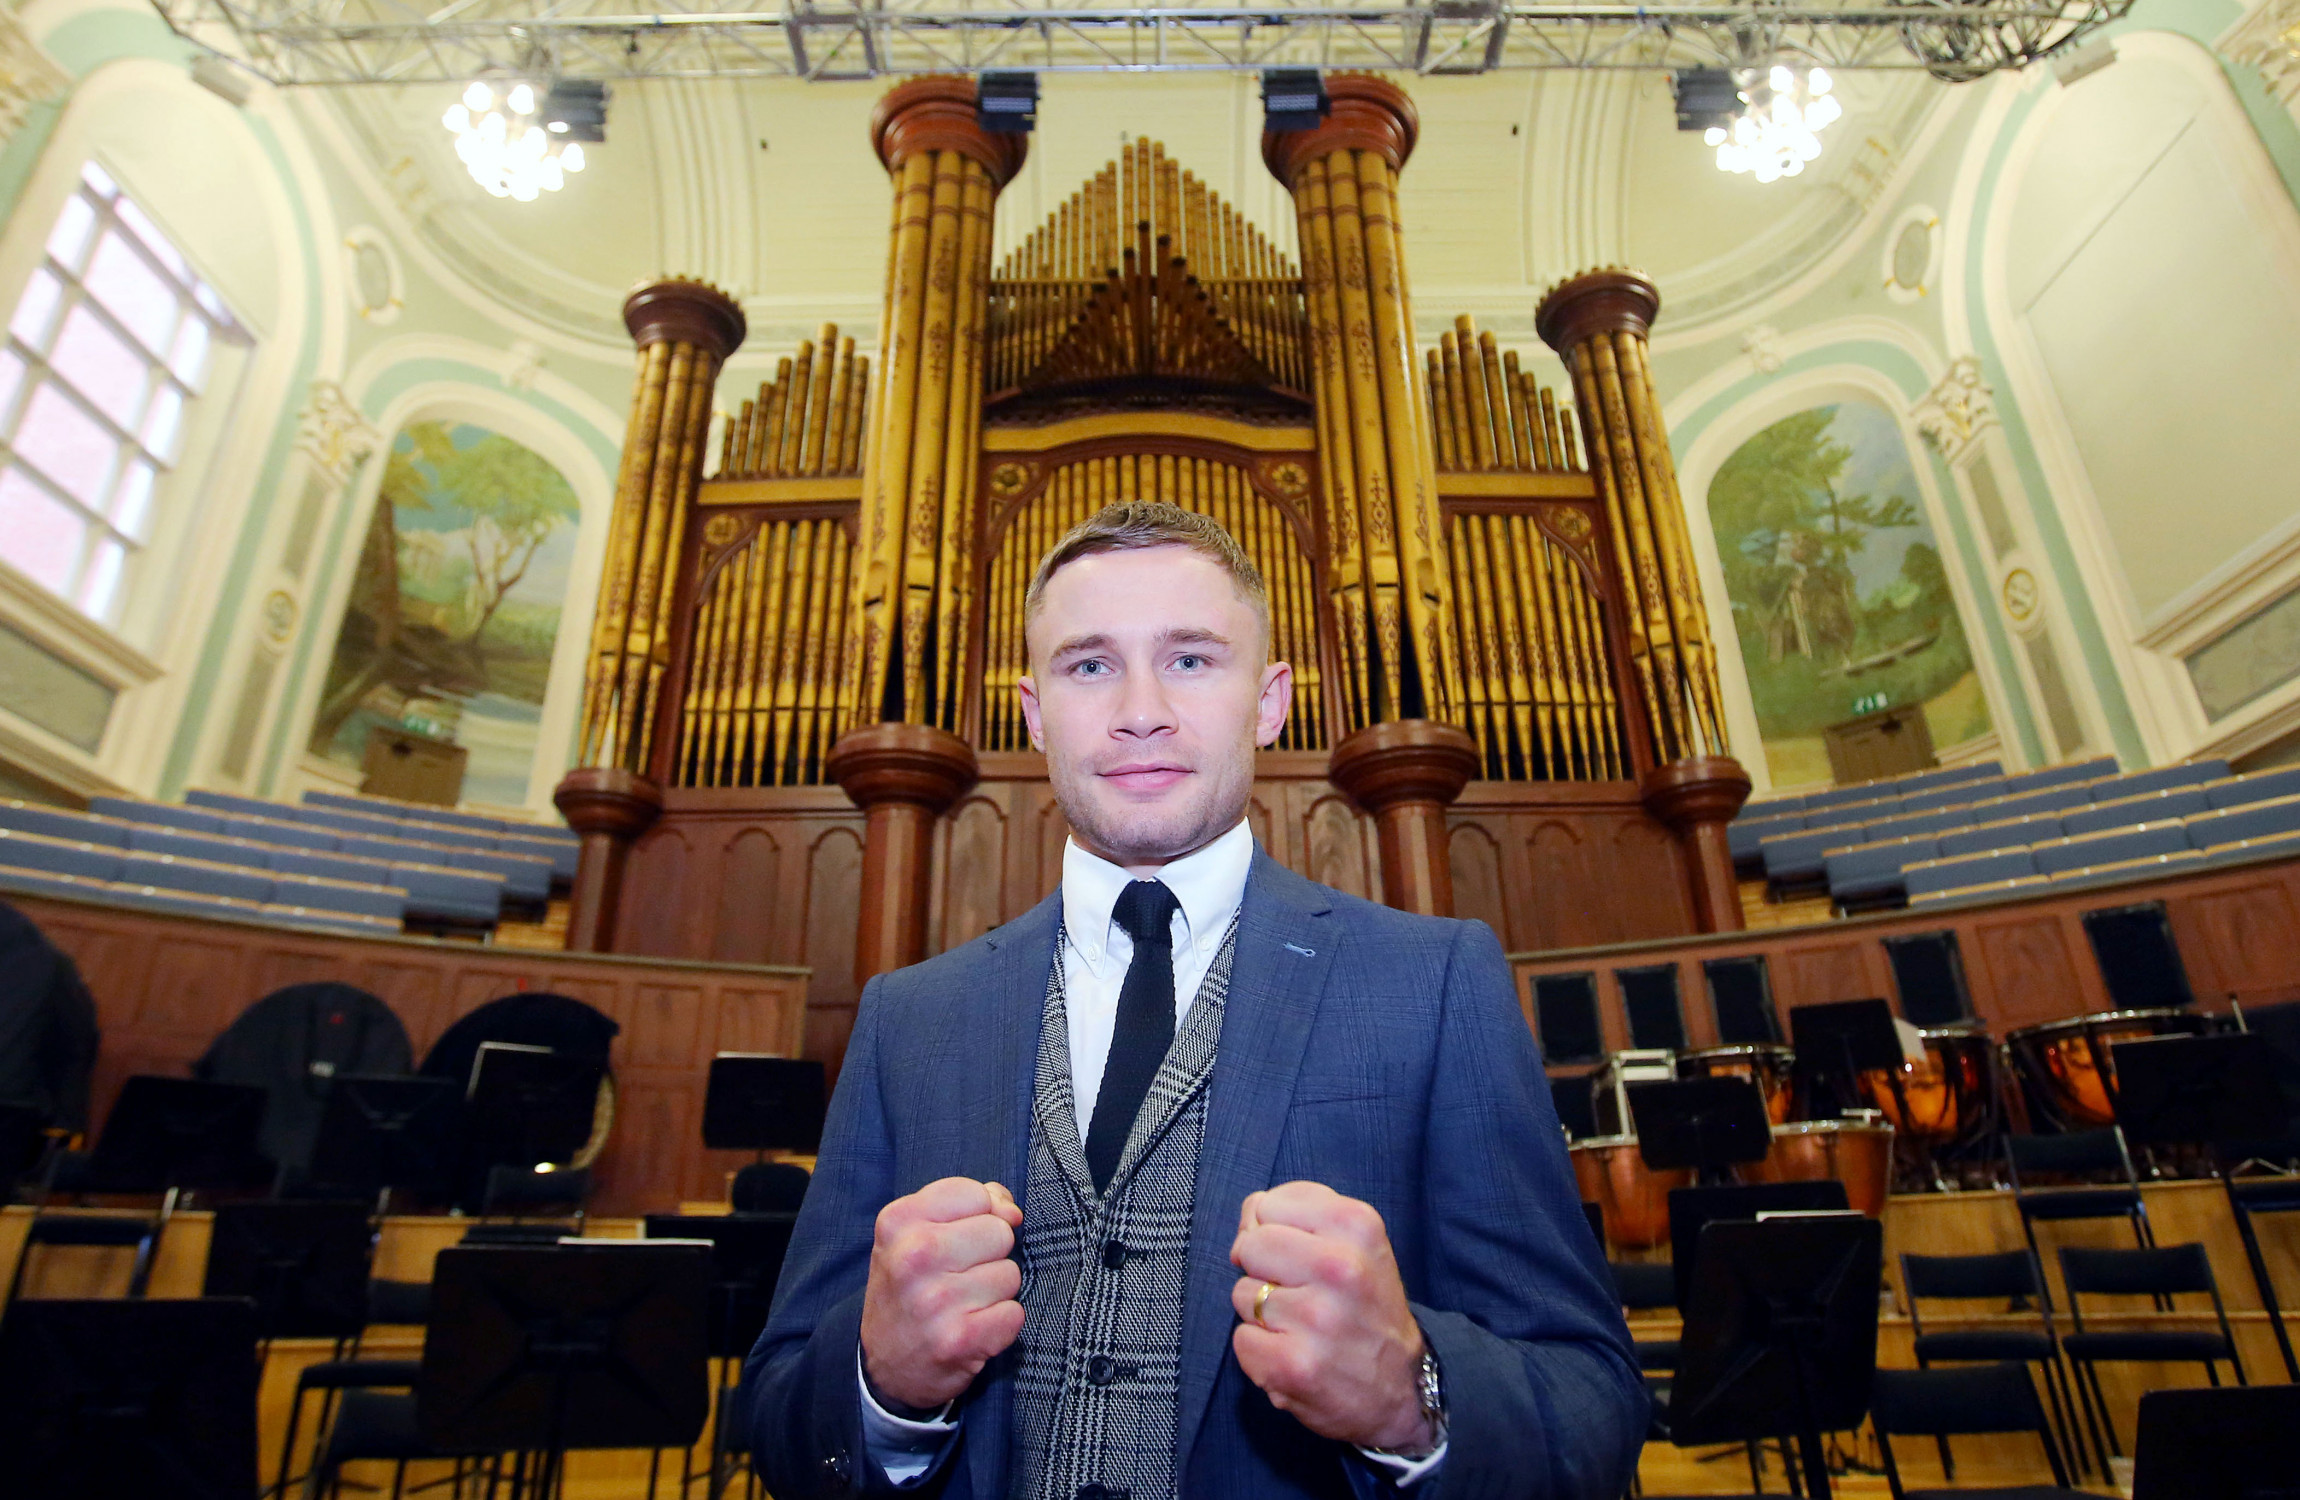 Carl Frampton Picks Wisely At Career Crossroads